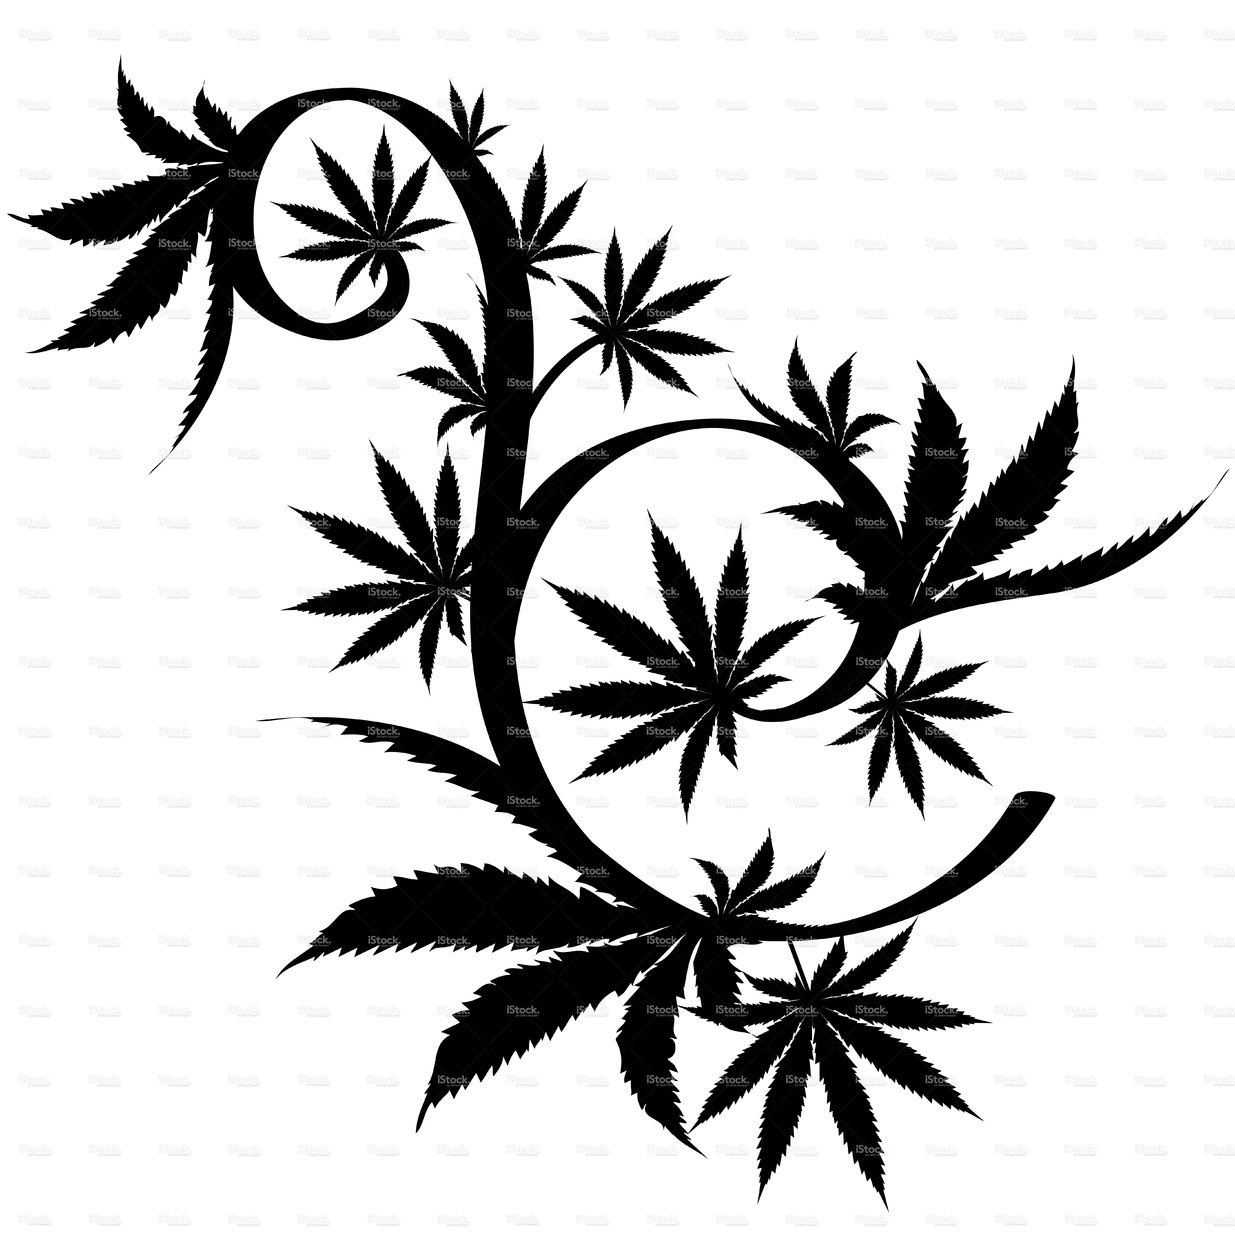 The Best Free Marijuana Silhouette Images  Download From